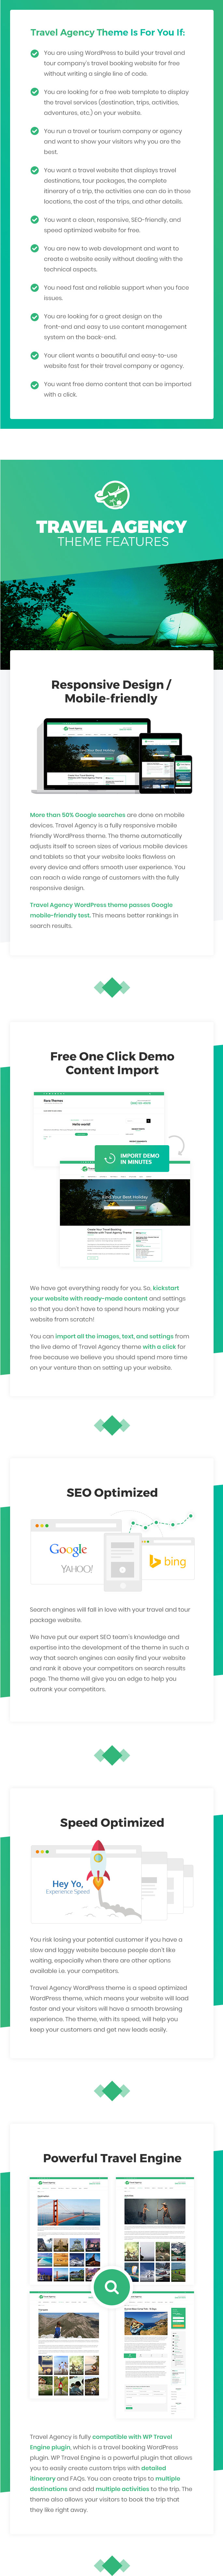 features of Travel Agency WordPress Theme